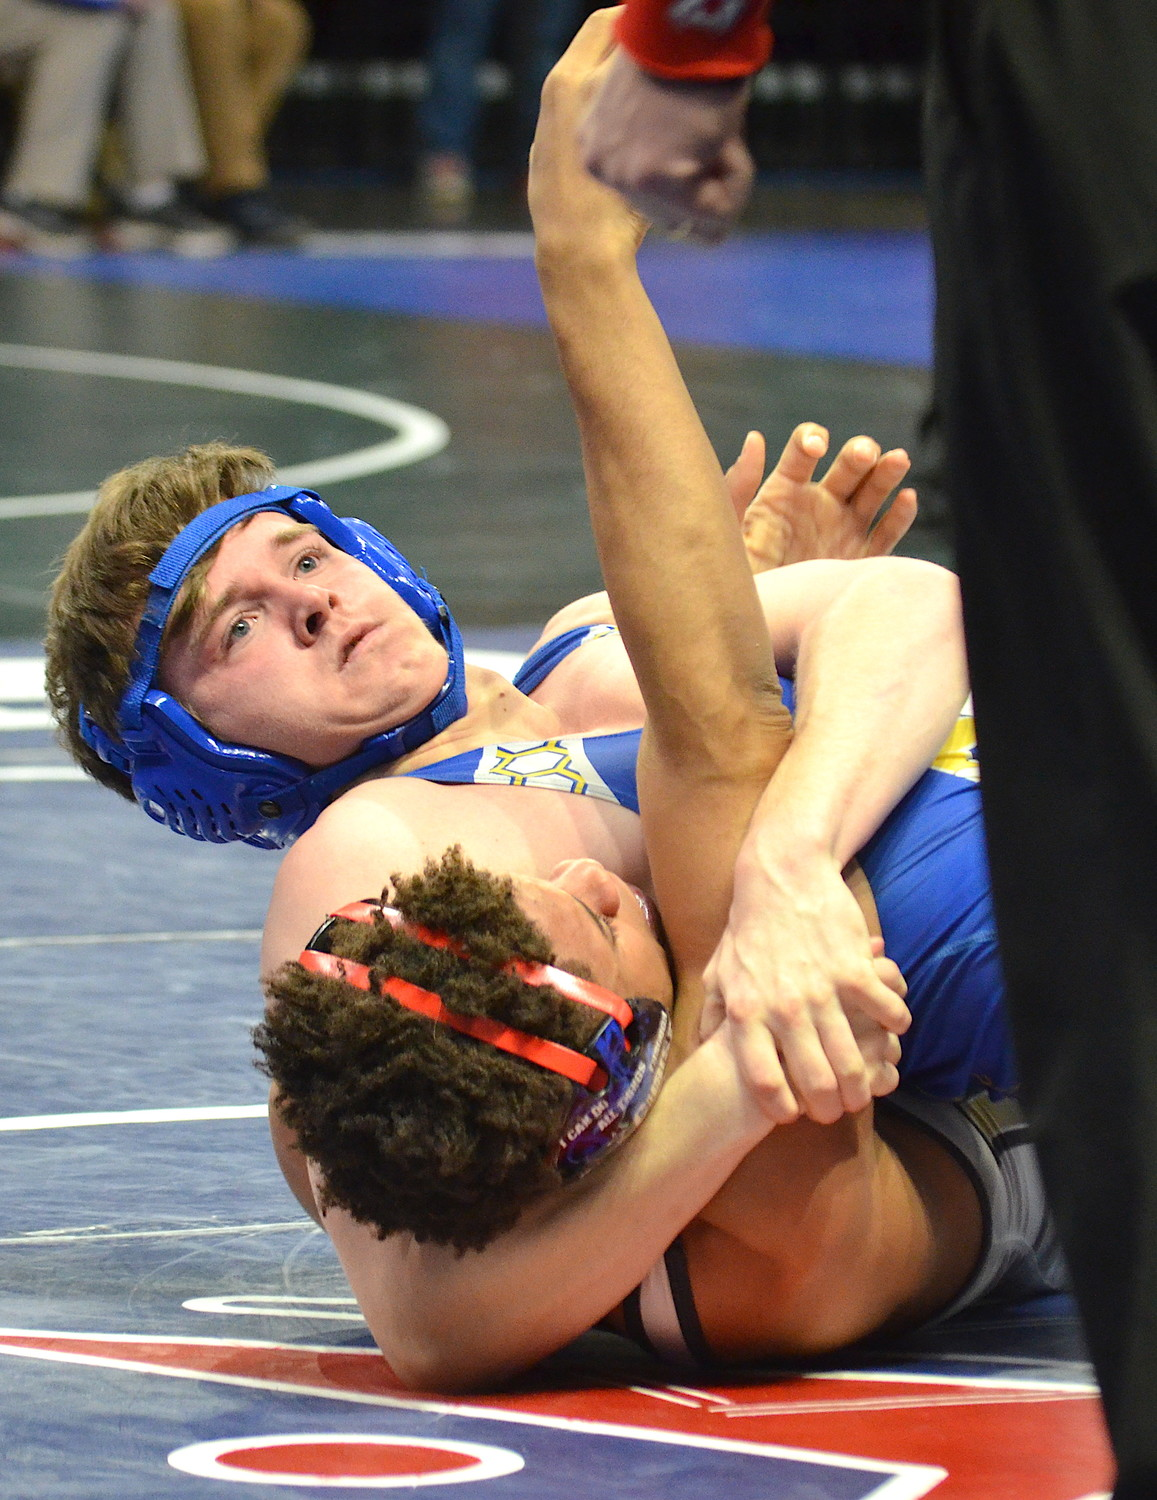 Curry's Nate South, top, battles Jasper's Mark Stitt during their 170-pound match at the North Super Section Tournament in Birmingham on Saturday. South won by pin.